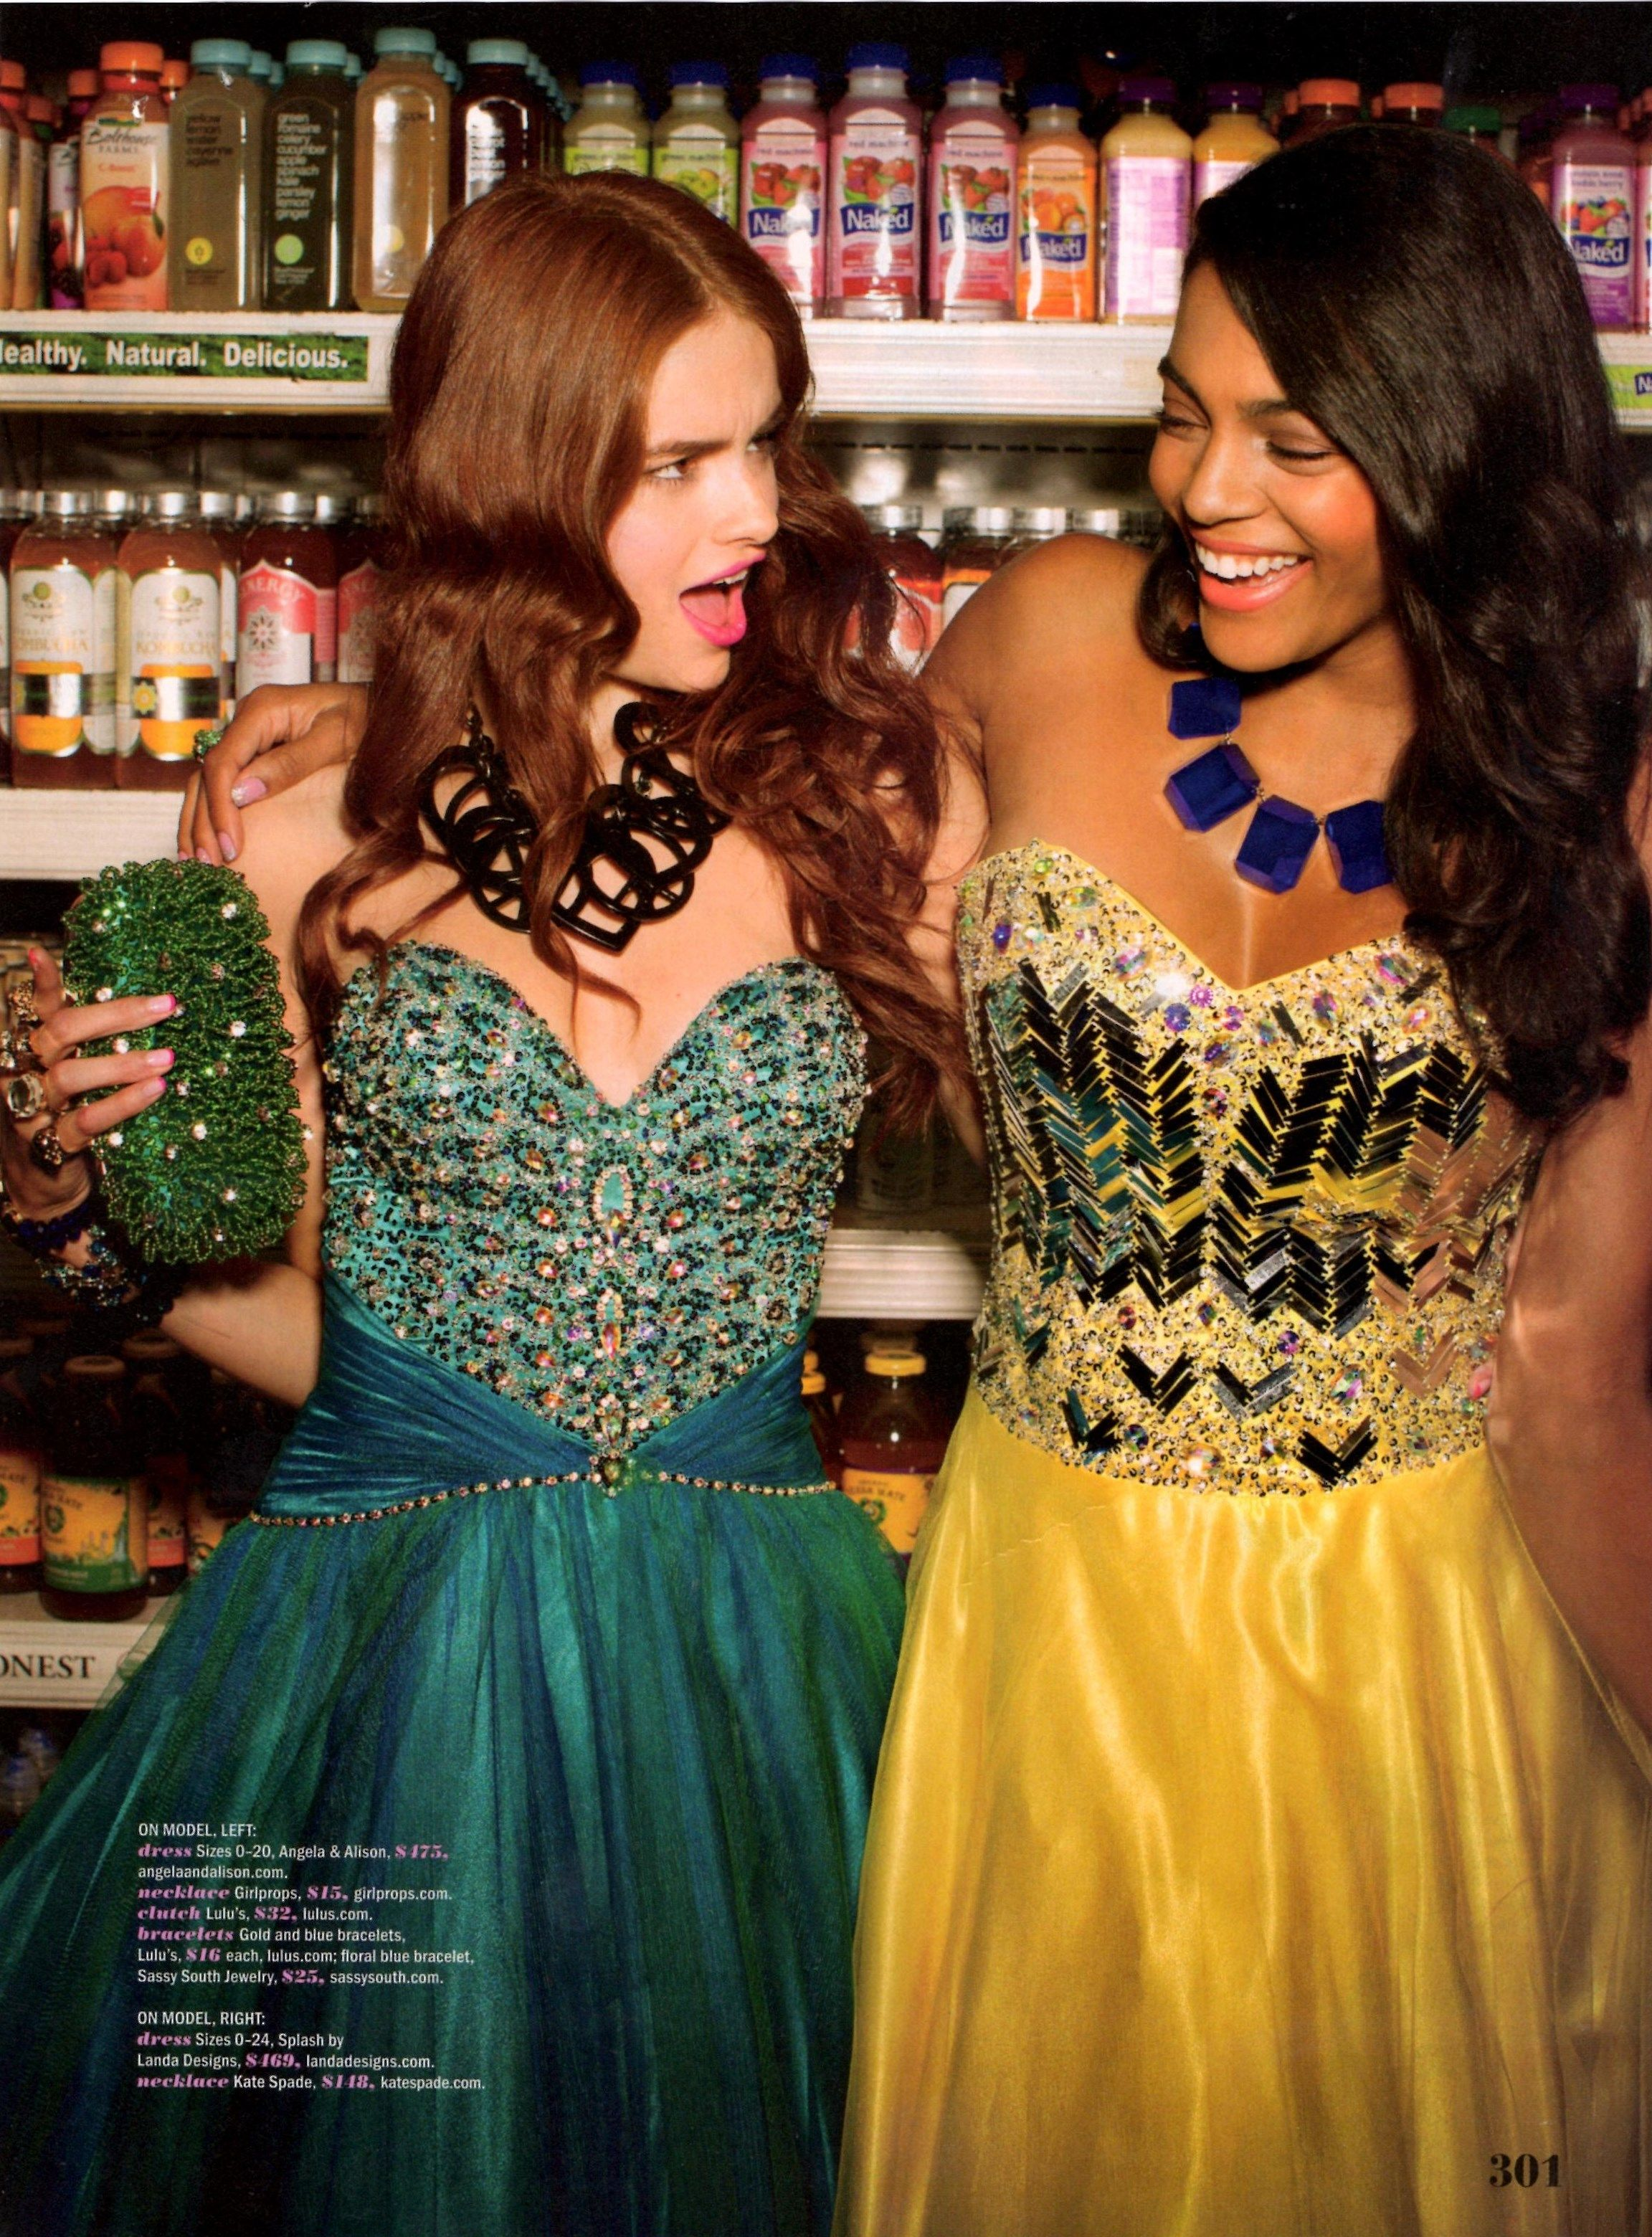 Spring issue of Seventeen magazine Prom edition. Hair by